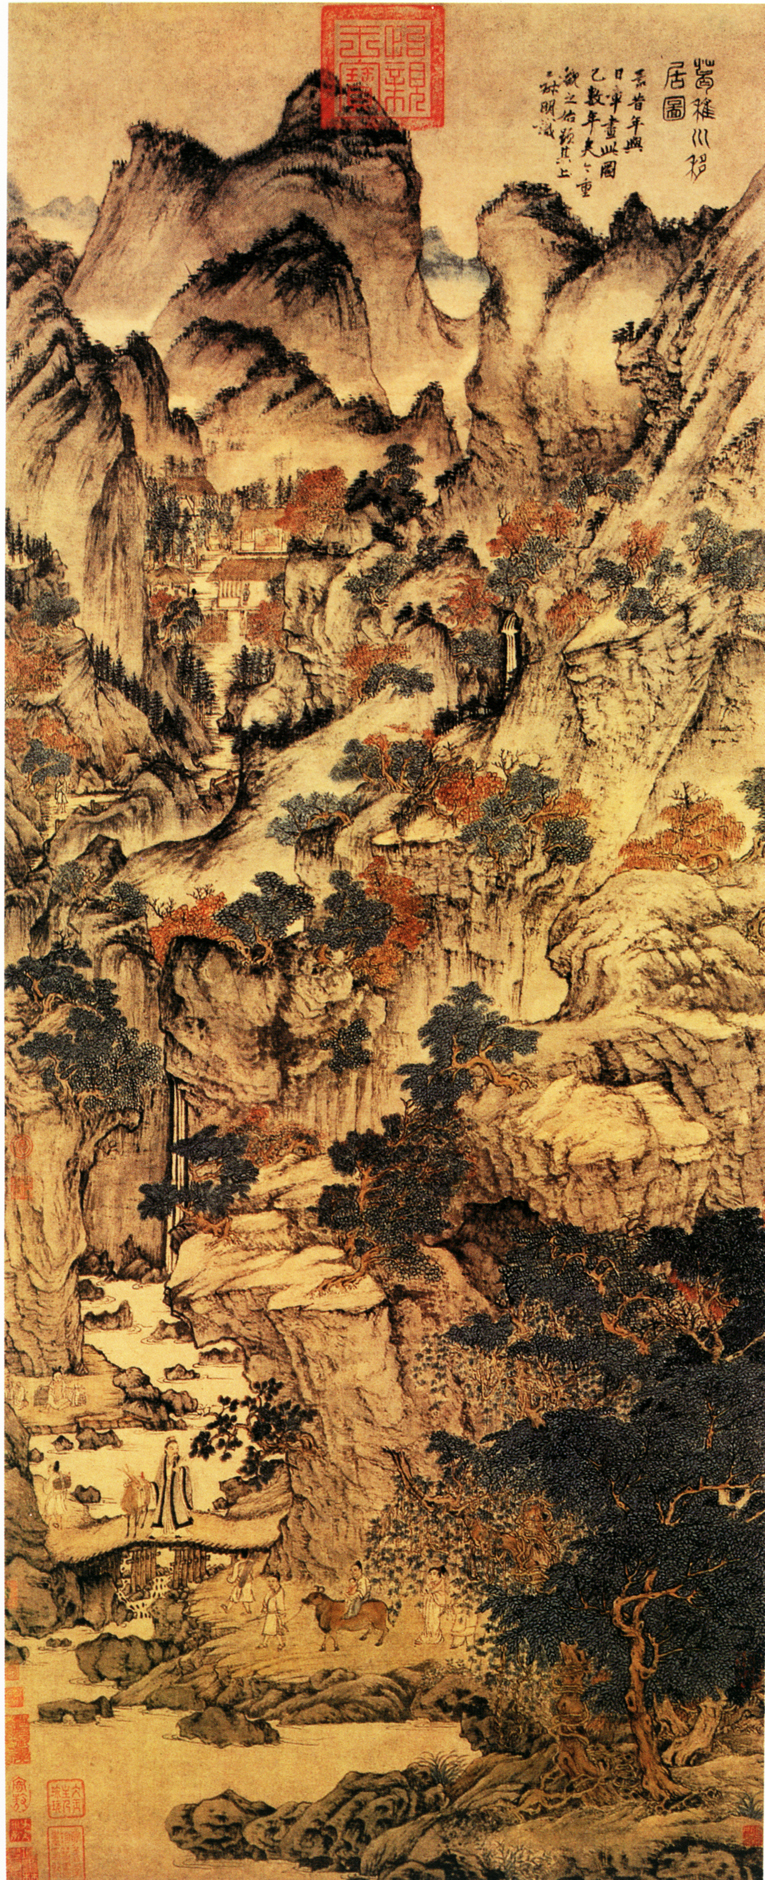 Wang Meng S Scroll Painting Of Ge Zhichuan Moving His Dwelling